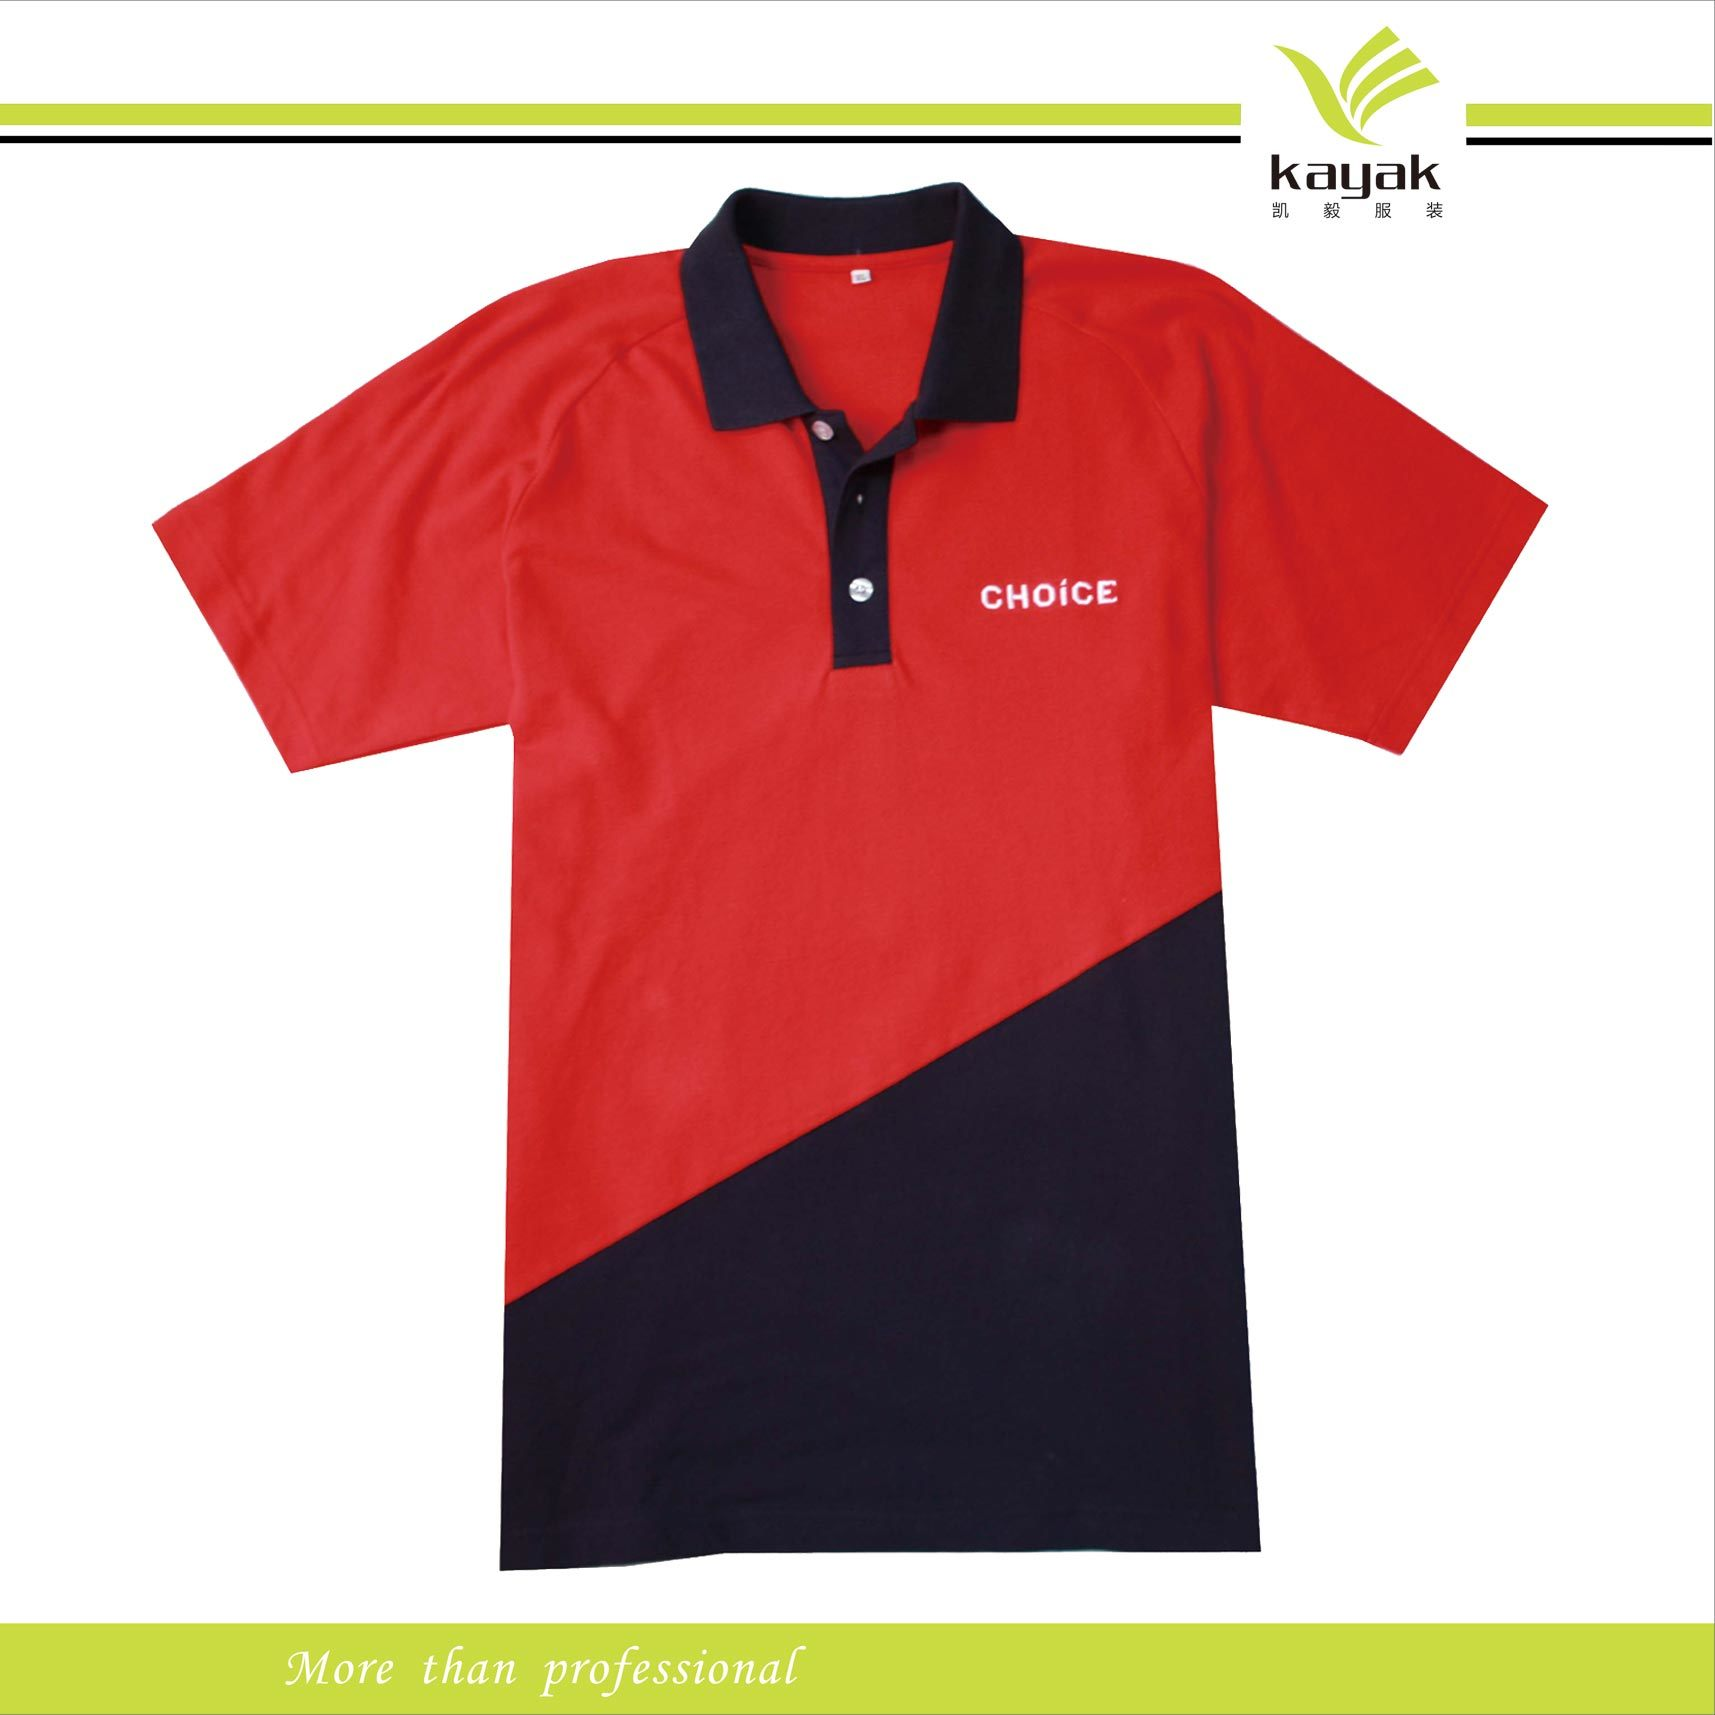 order customized polo shirts